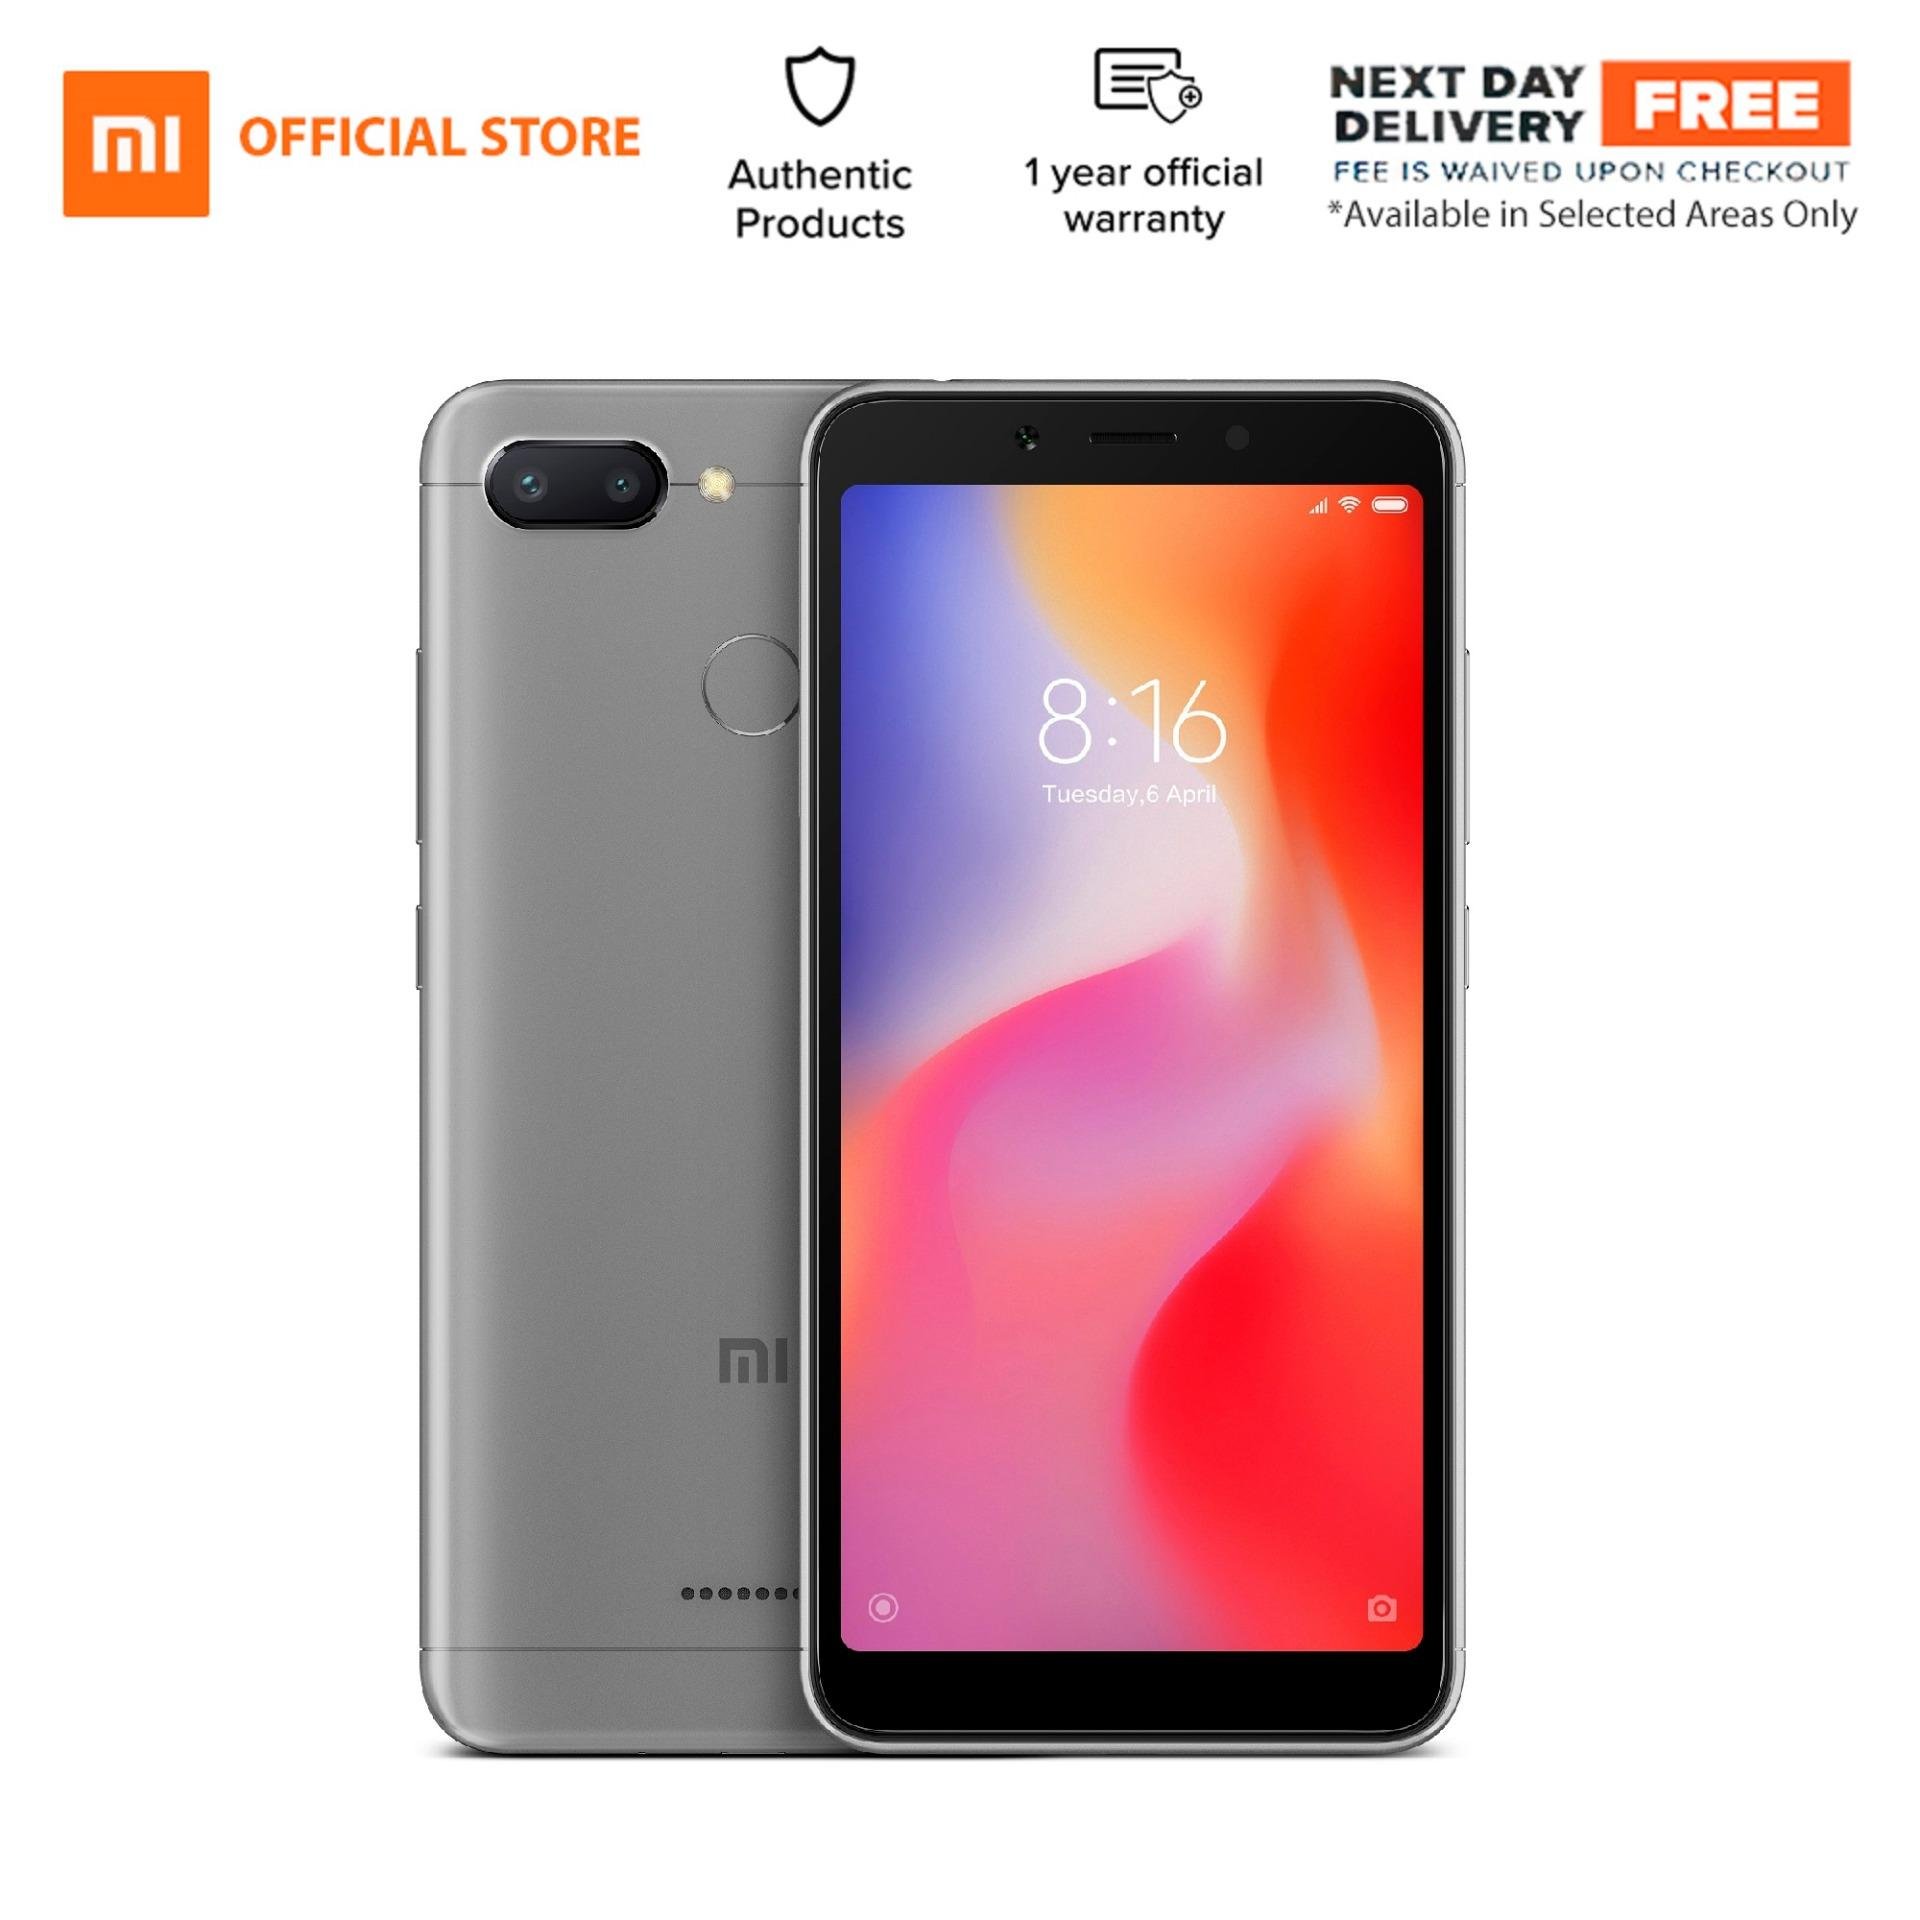 Cheap Xiaomi Phone Products For Sale Lazada Philippines Redmi 3s Pro 3 32 Gb Rom Global Gold 6 3gb Ram 32gb